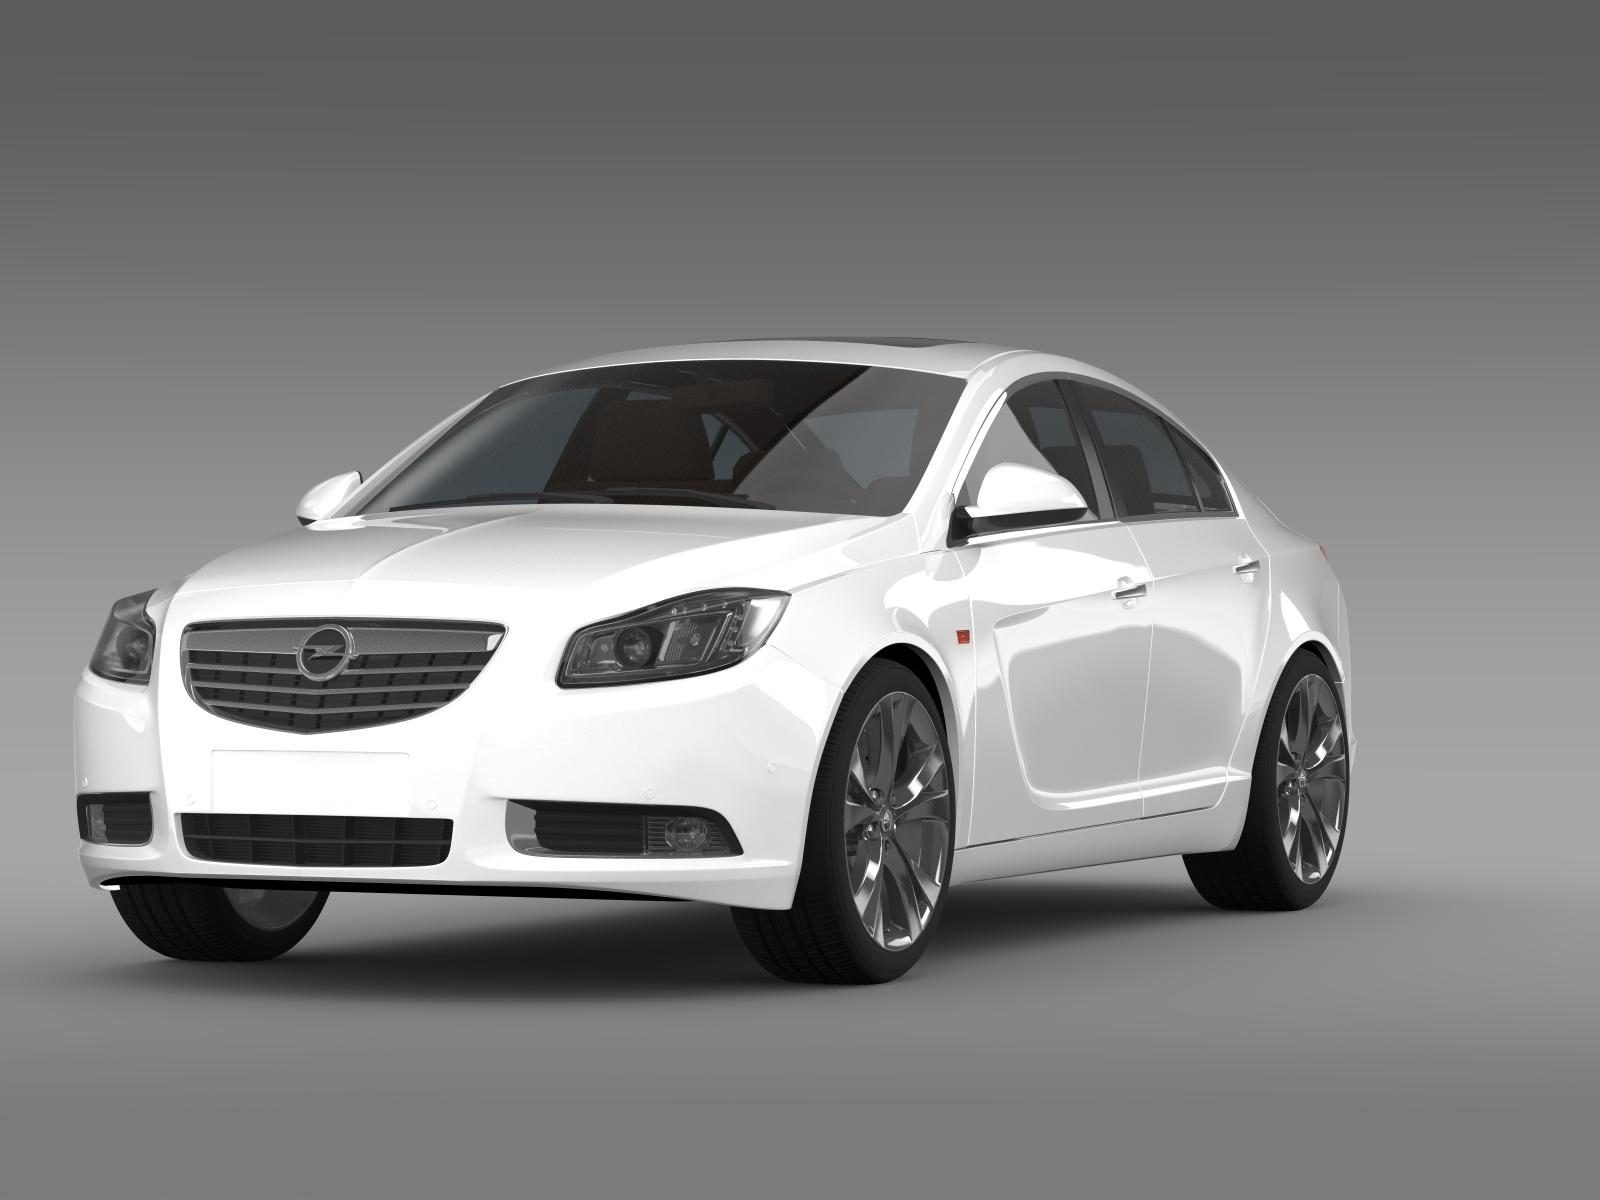 opel insignia biturbo 2008 13 3d model buy opel insignia biturbo 2008 13 3d model flatpyramid. Black Bedroom Furniture Sets. Home Design Ideas